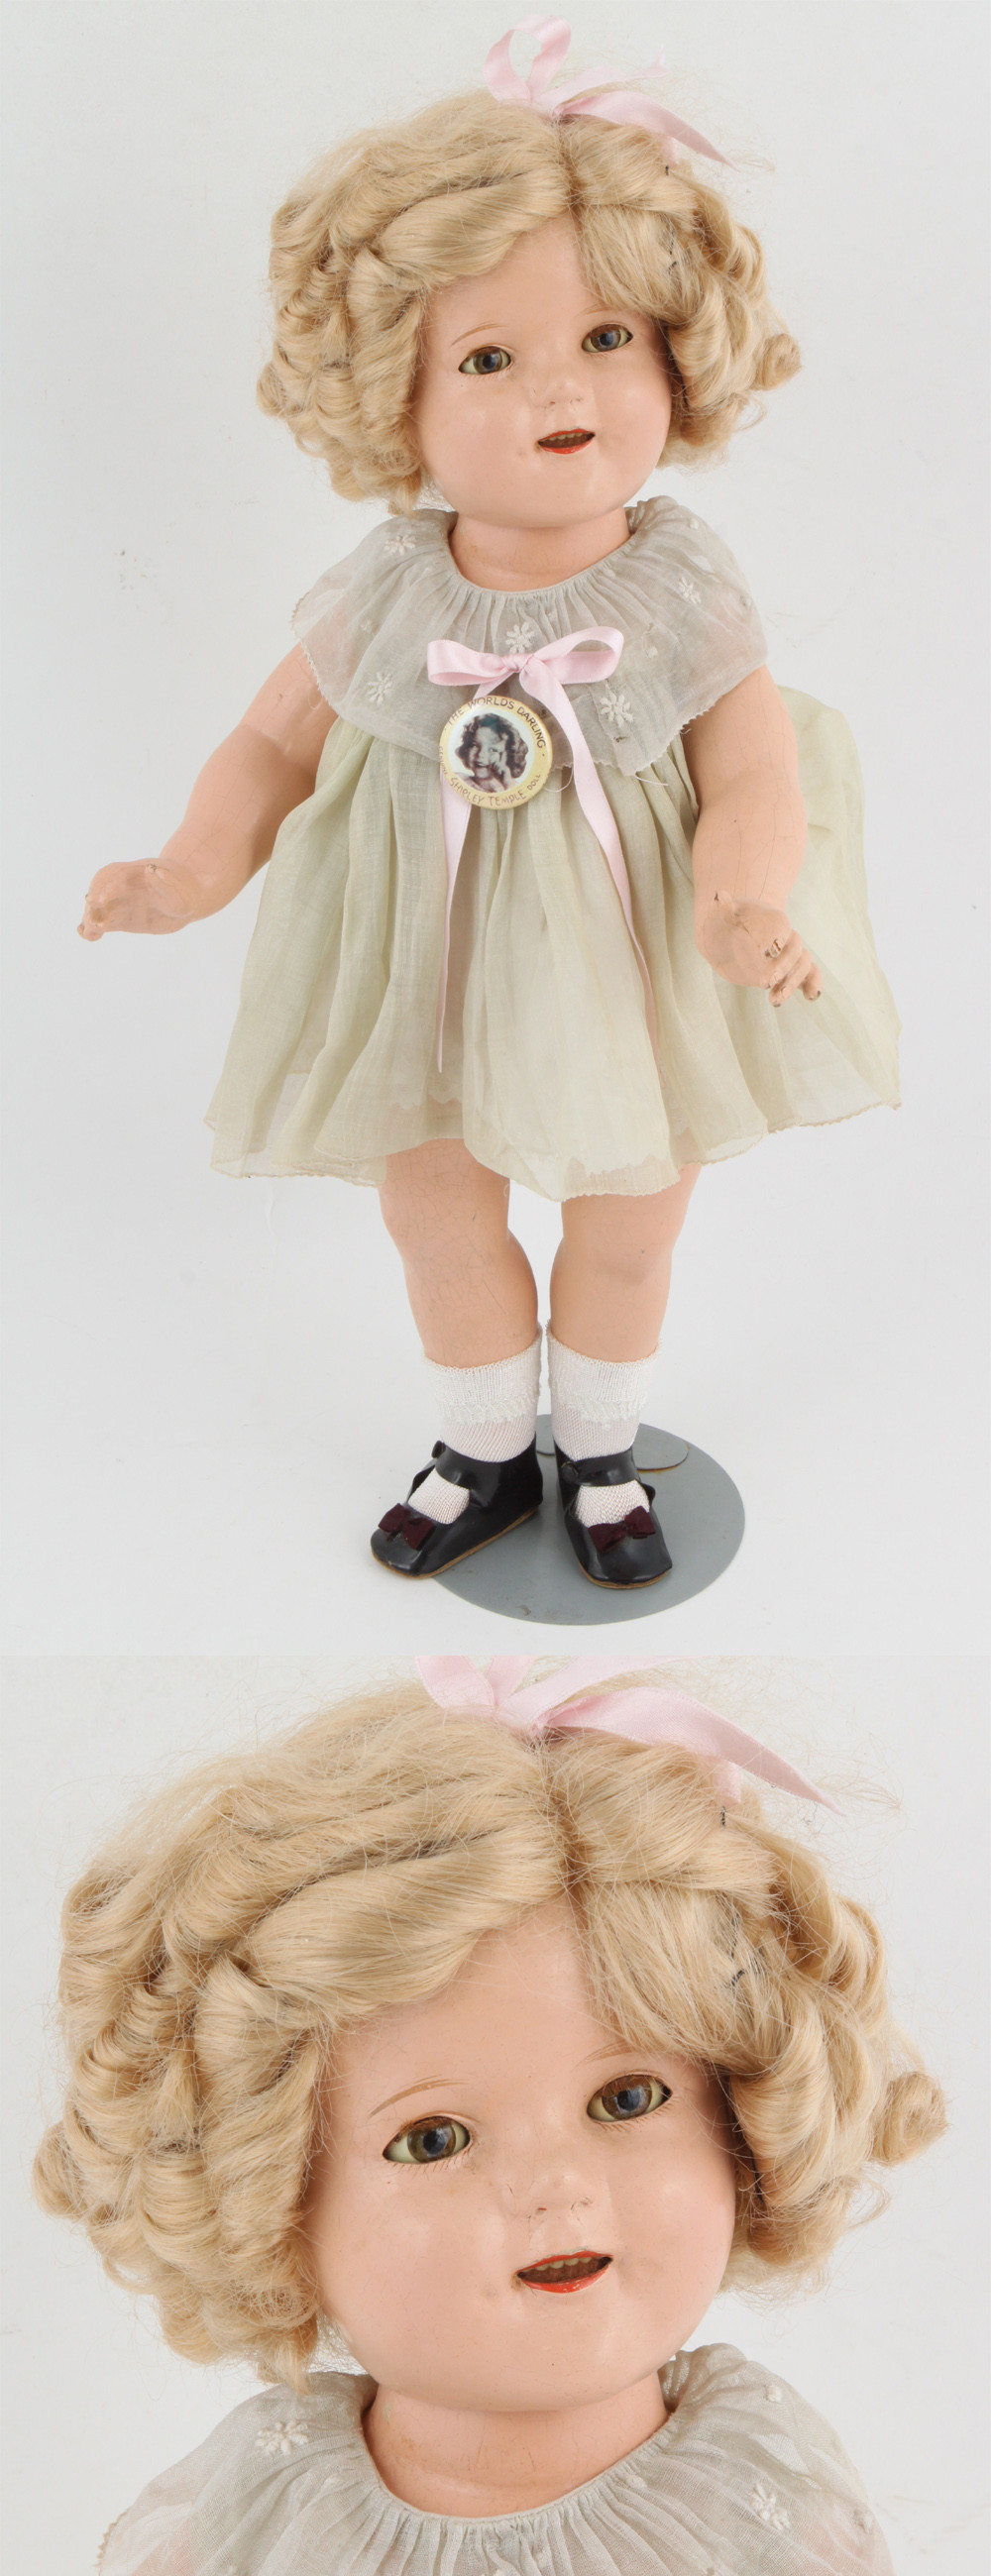 """Shirley Temple Doll Value Awesome Buy Shirley Temple Doll Position 18"""" Dancing Of Amazing 43 Pics Shirley Temple Doll Value"""